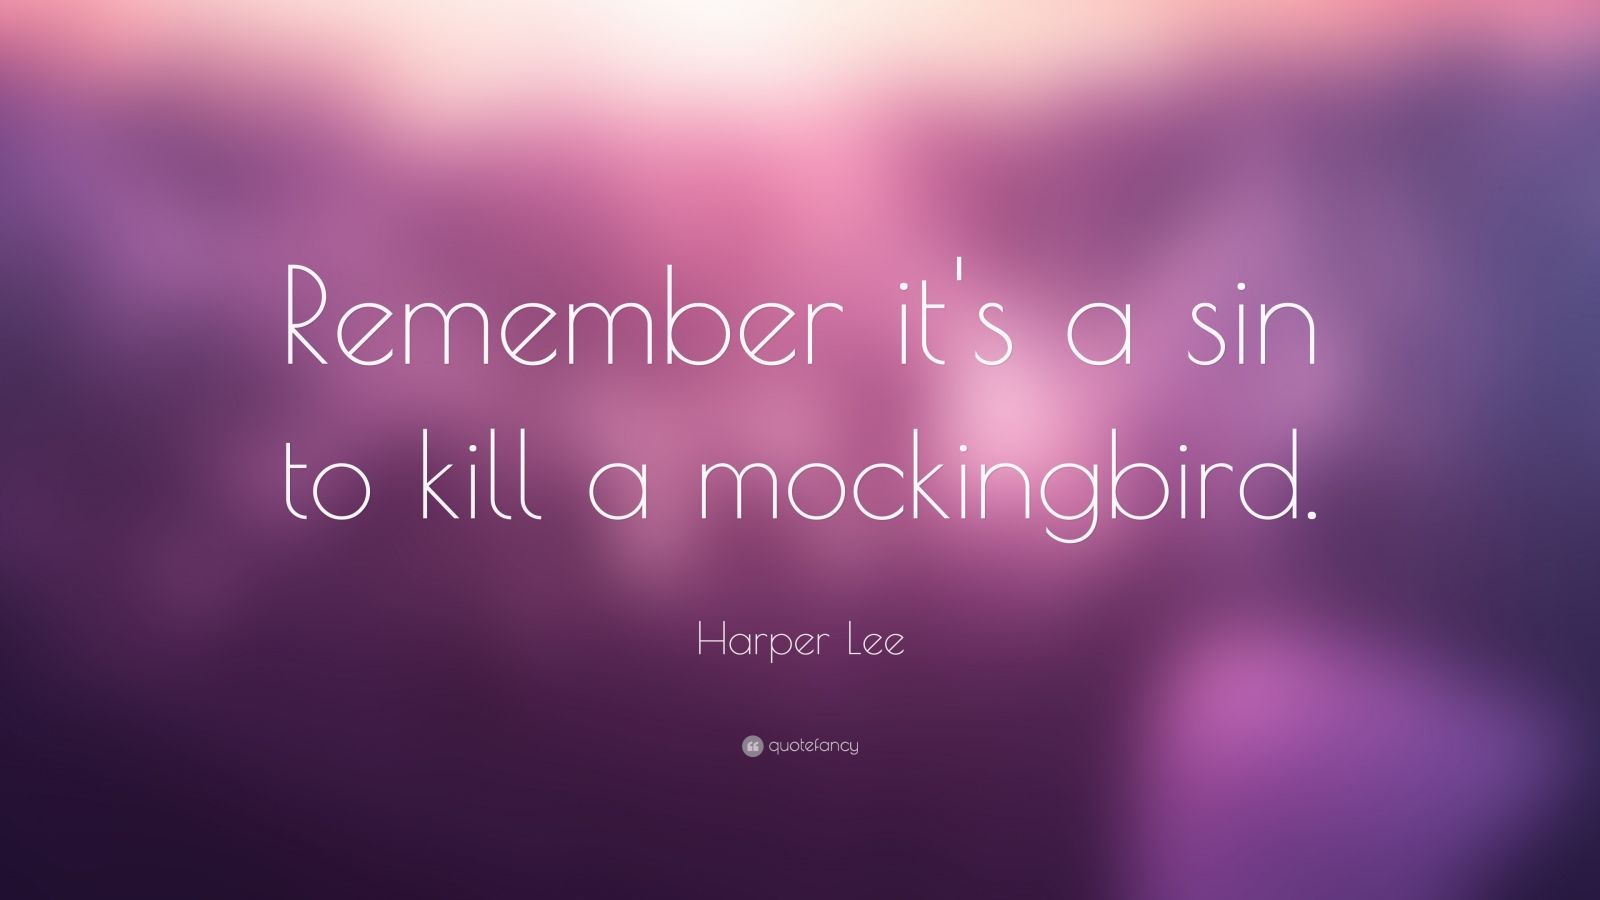 sin to kill a mockingbird Full answer in harper lee's 1960 novel to kill a mockingbird, atticus finch tells scout that it is a sin to kill a mockingbird scout notes that this is the only time her father has ever told her it is a sin to do something, and she wonders why.